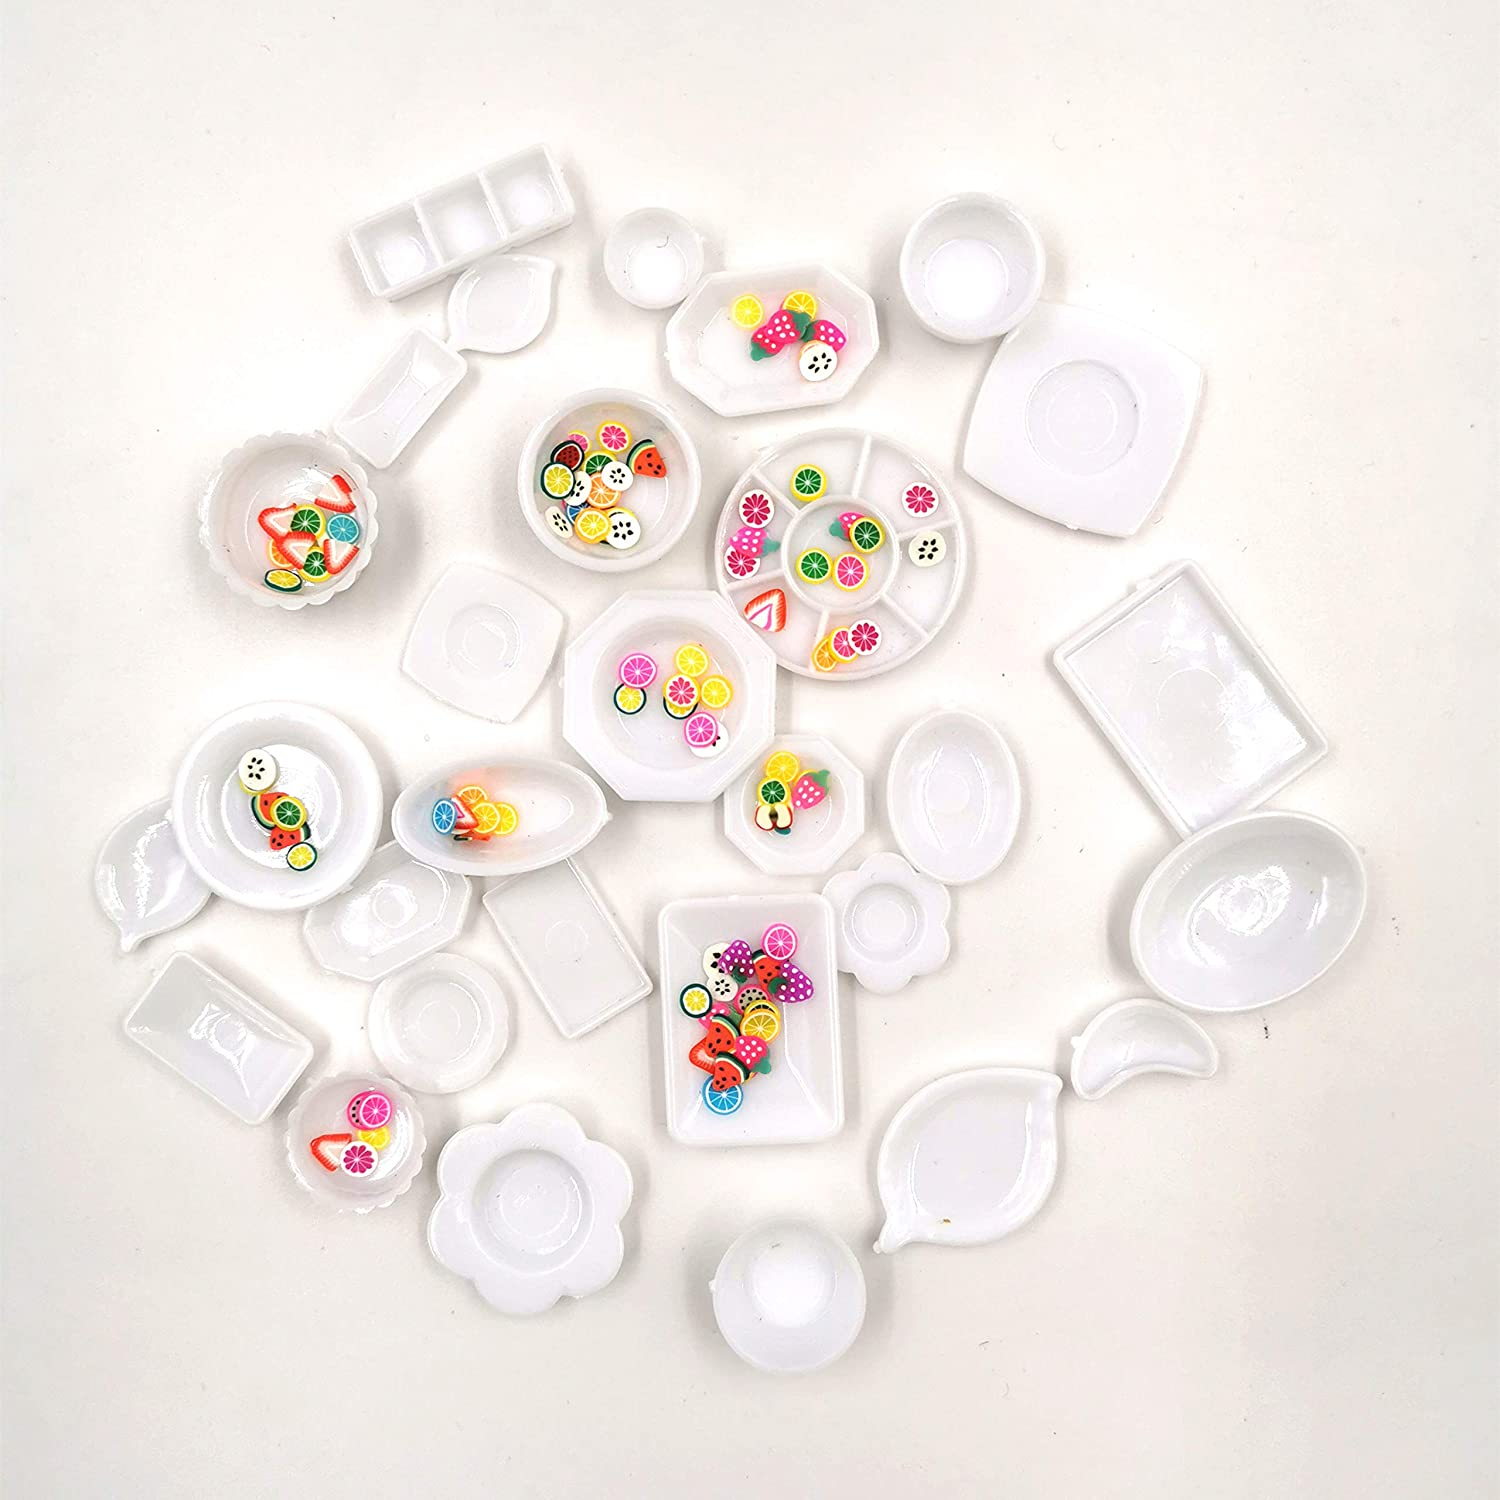 Taponukea Dollhouse Furniture and Accessories 30 Pcs Plastic Cutlery Plate Dishes Set with Miniature Fruits 1 12 Scale